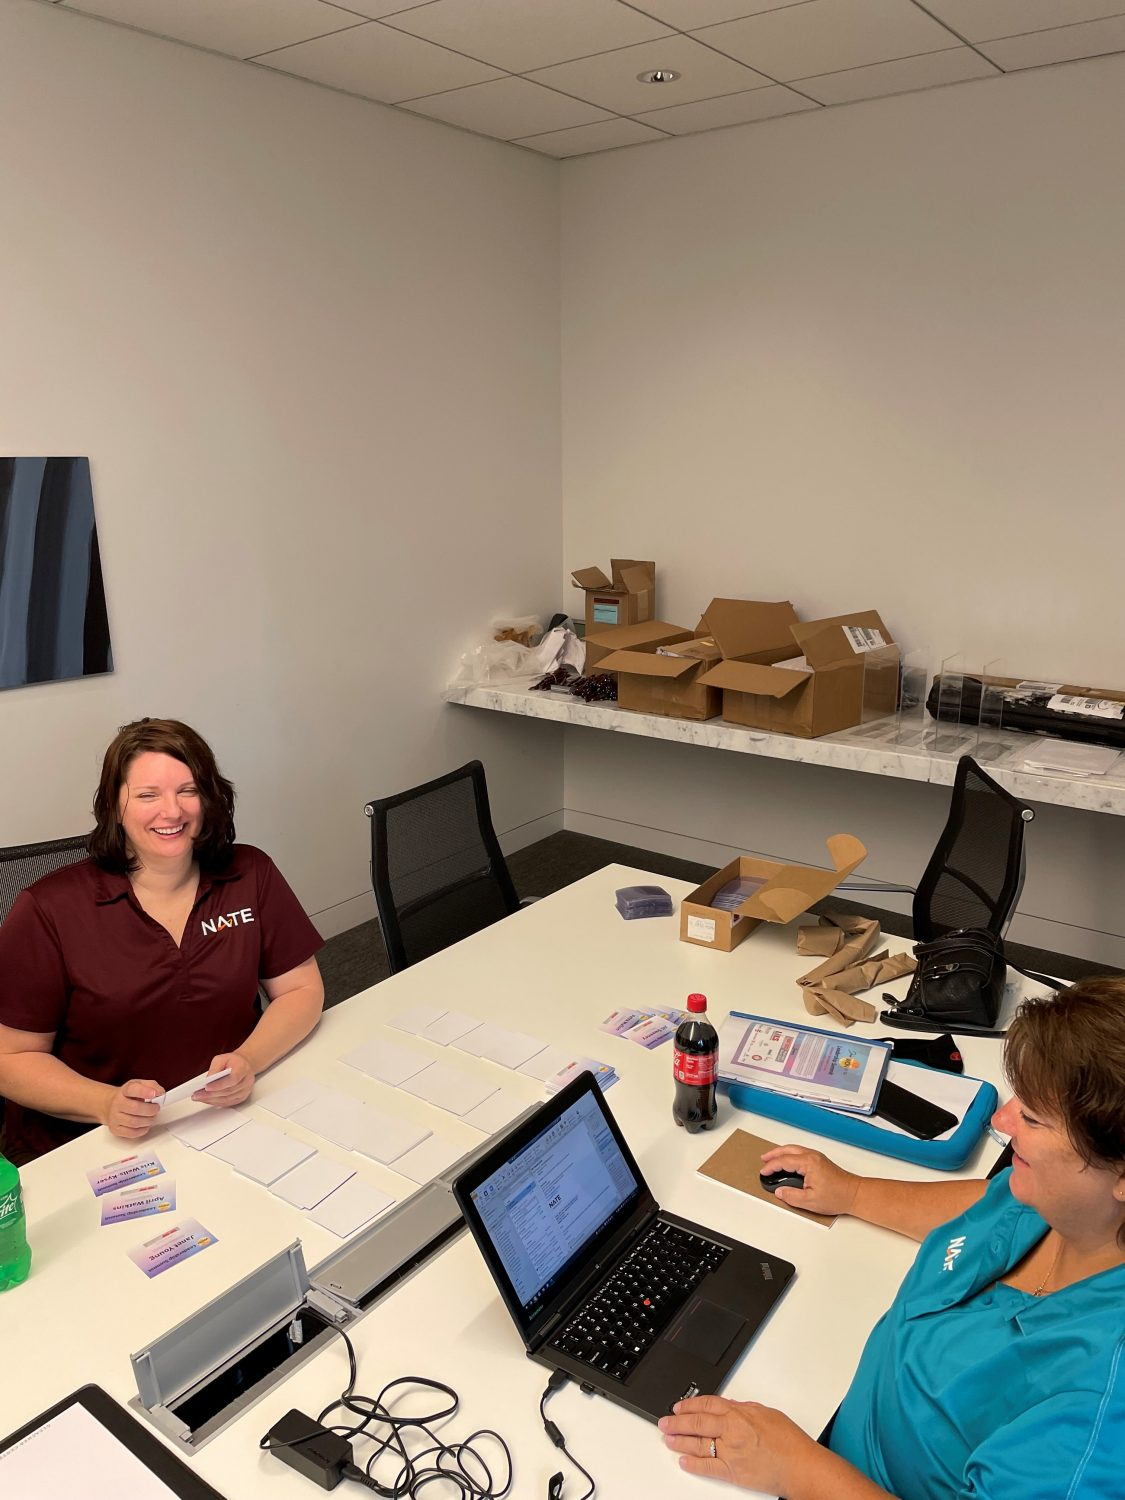 Sara And Nikki In The Work Room At The Gleacher Center